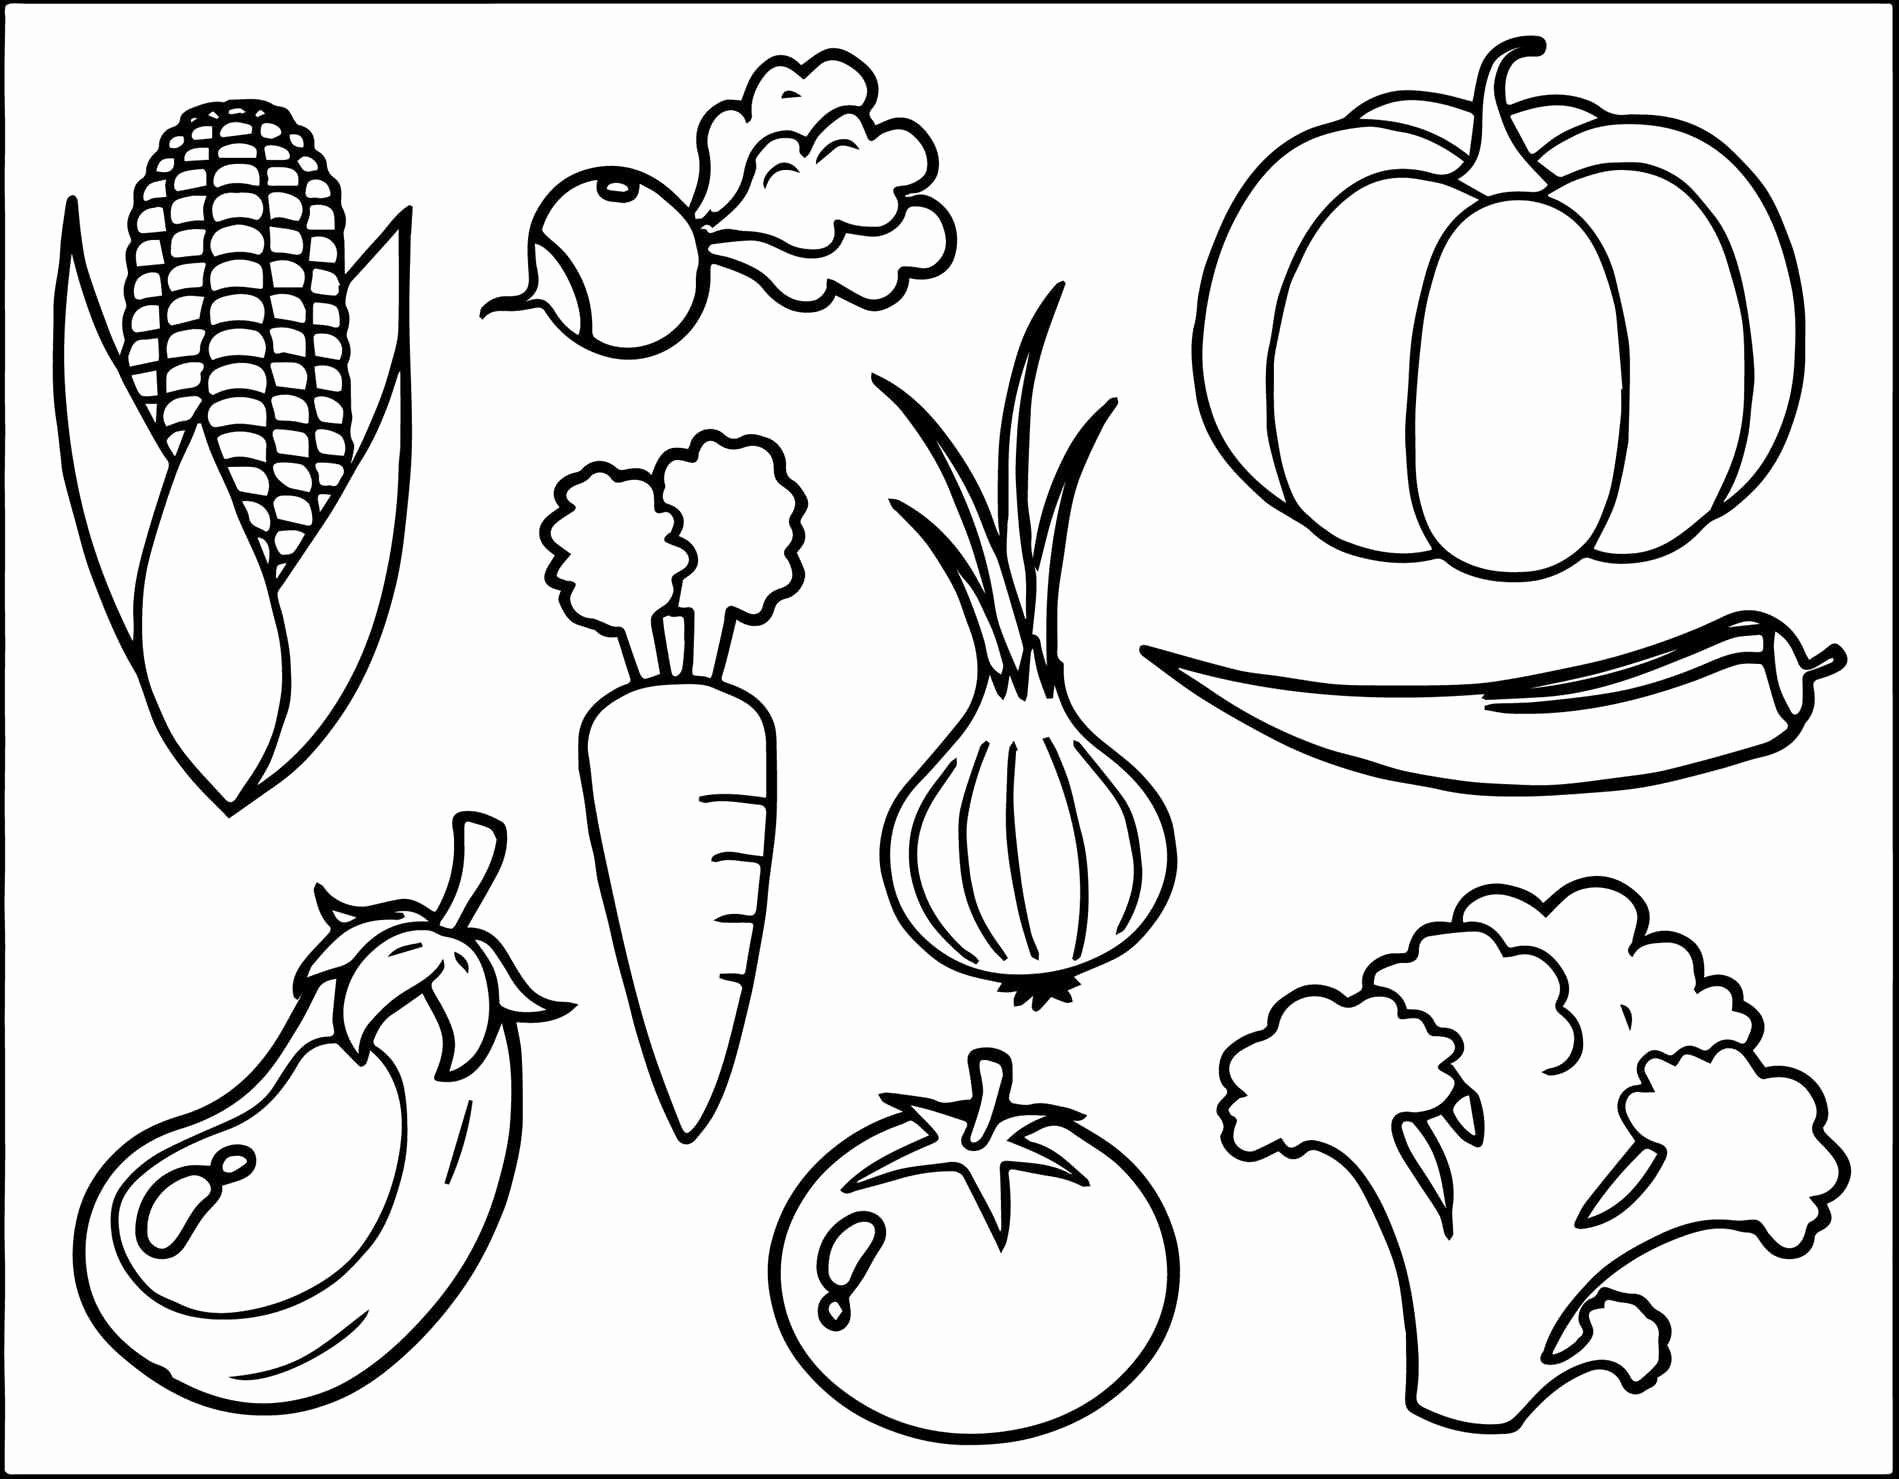 Fruits And Vegetable Coloring Books Pdf For Kids Inspirational Pretty Of Healthy Food Colori Fruit Coloring Pages Food Coloring Pages Vegetable Coloring Pages